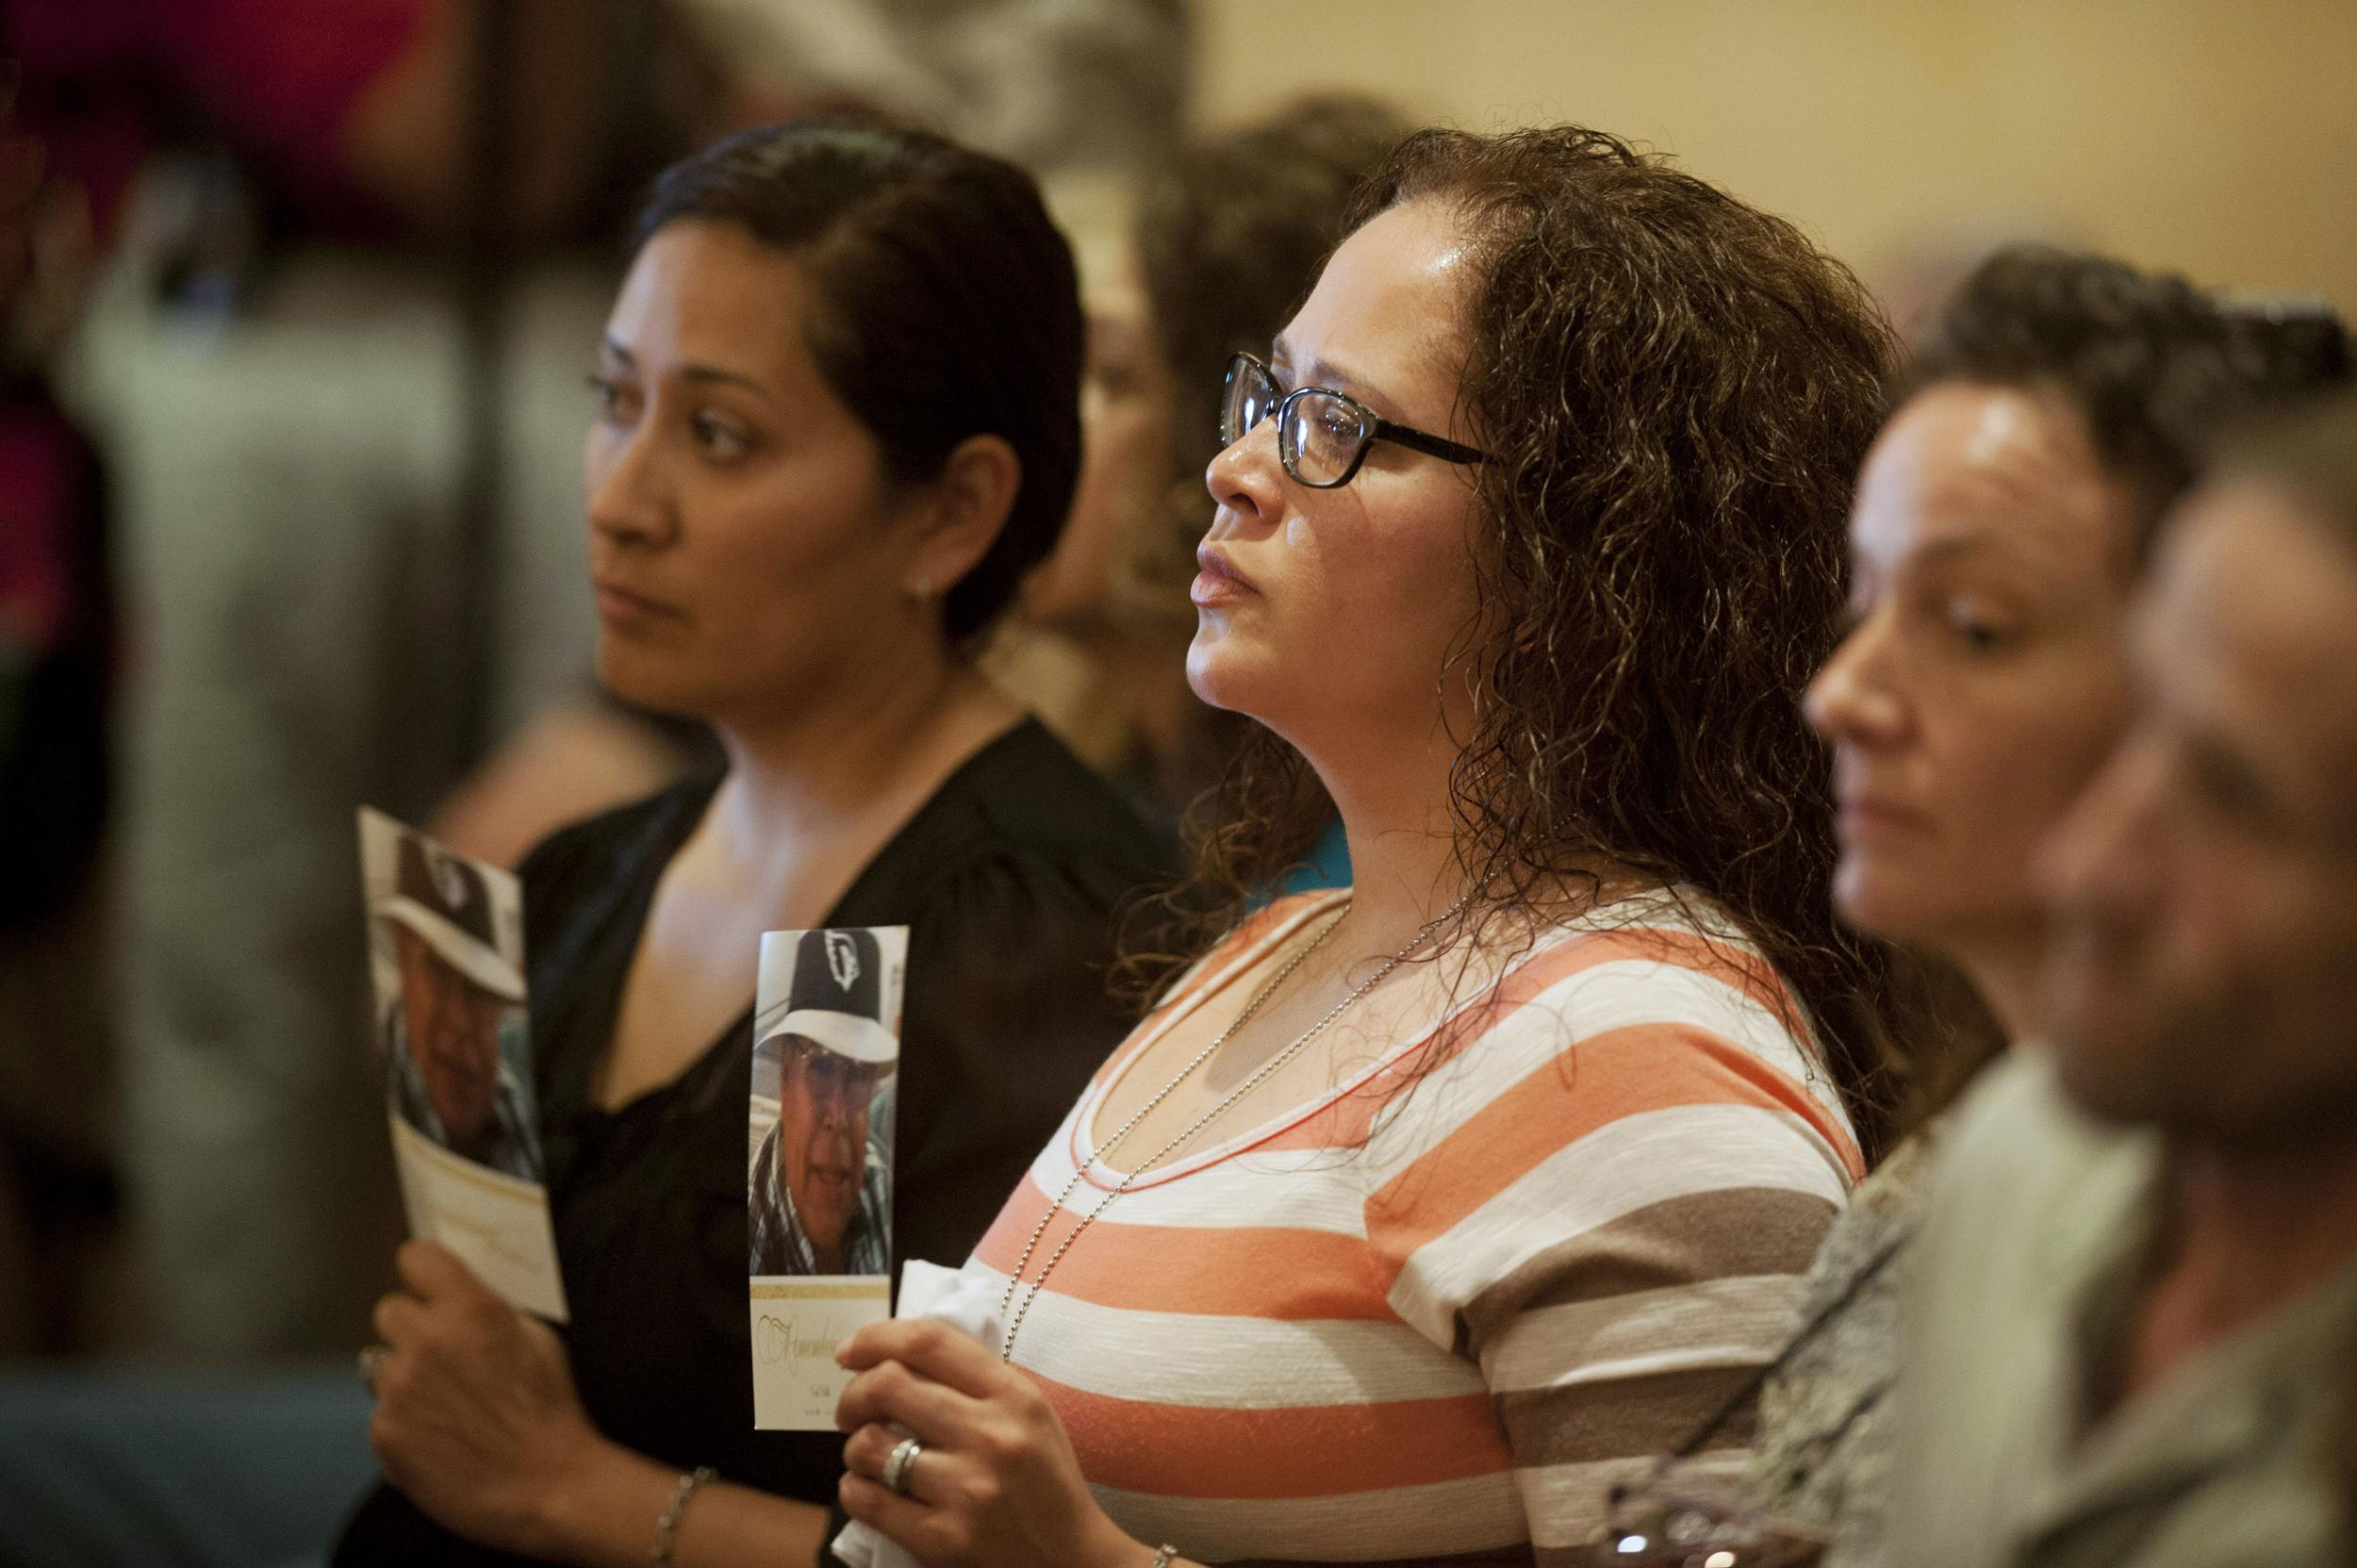 Image: Dana Valle and Stacy Acevedo hold pictures of their father Cecil Valle at a forum at the Burton Barr Central Library on May 9, 2014 in Phoenix, Arizona.